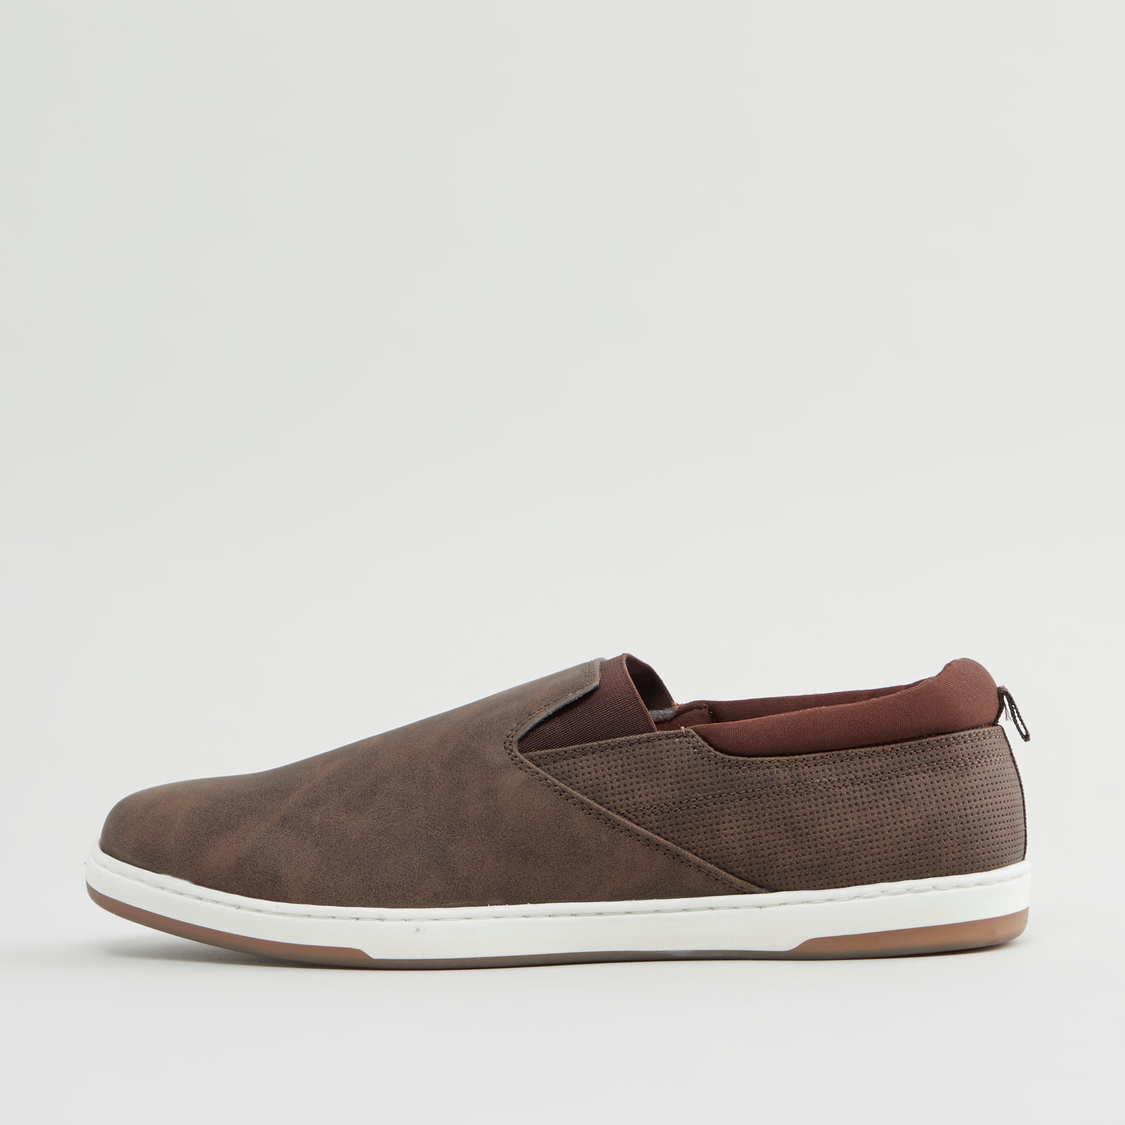 Textured Slip-On Loafers